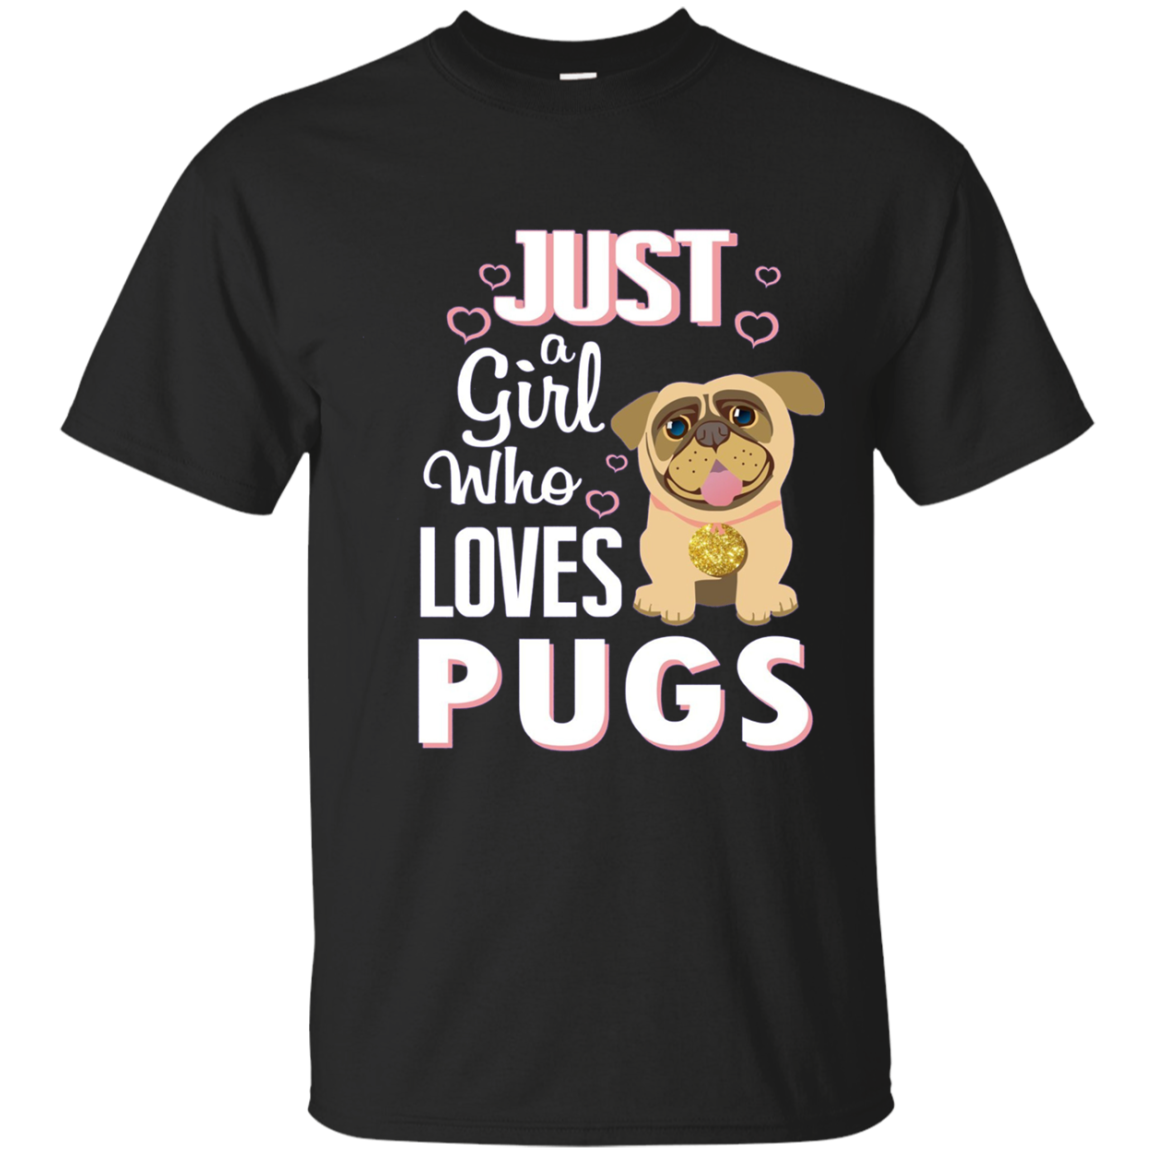 Just A Girl Who Loves Pugs - Pug Gifts For Girls